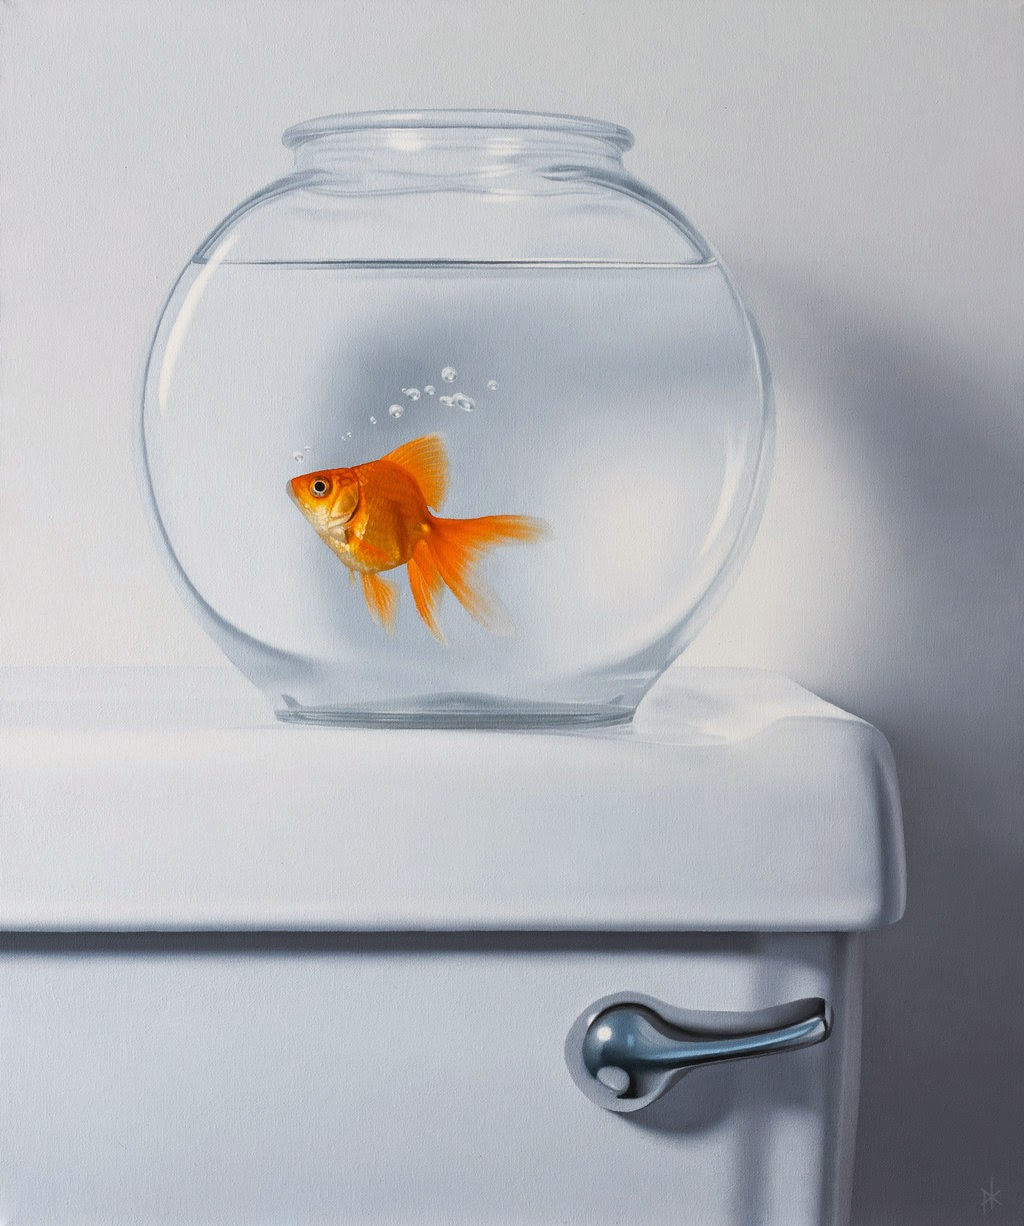 09-Living-on-the-Edge-Patrick-Kramer-Hyper-Realistic-Paintings-www-designstack-co